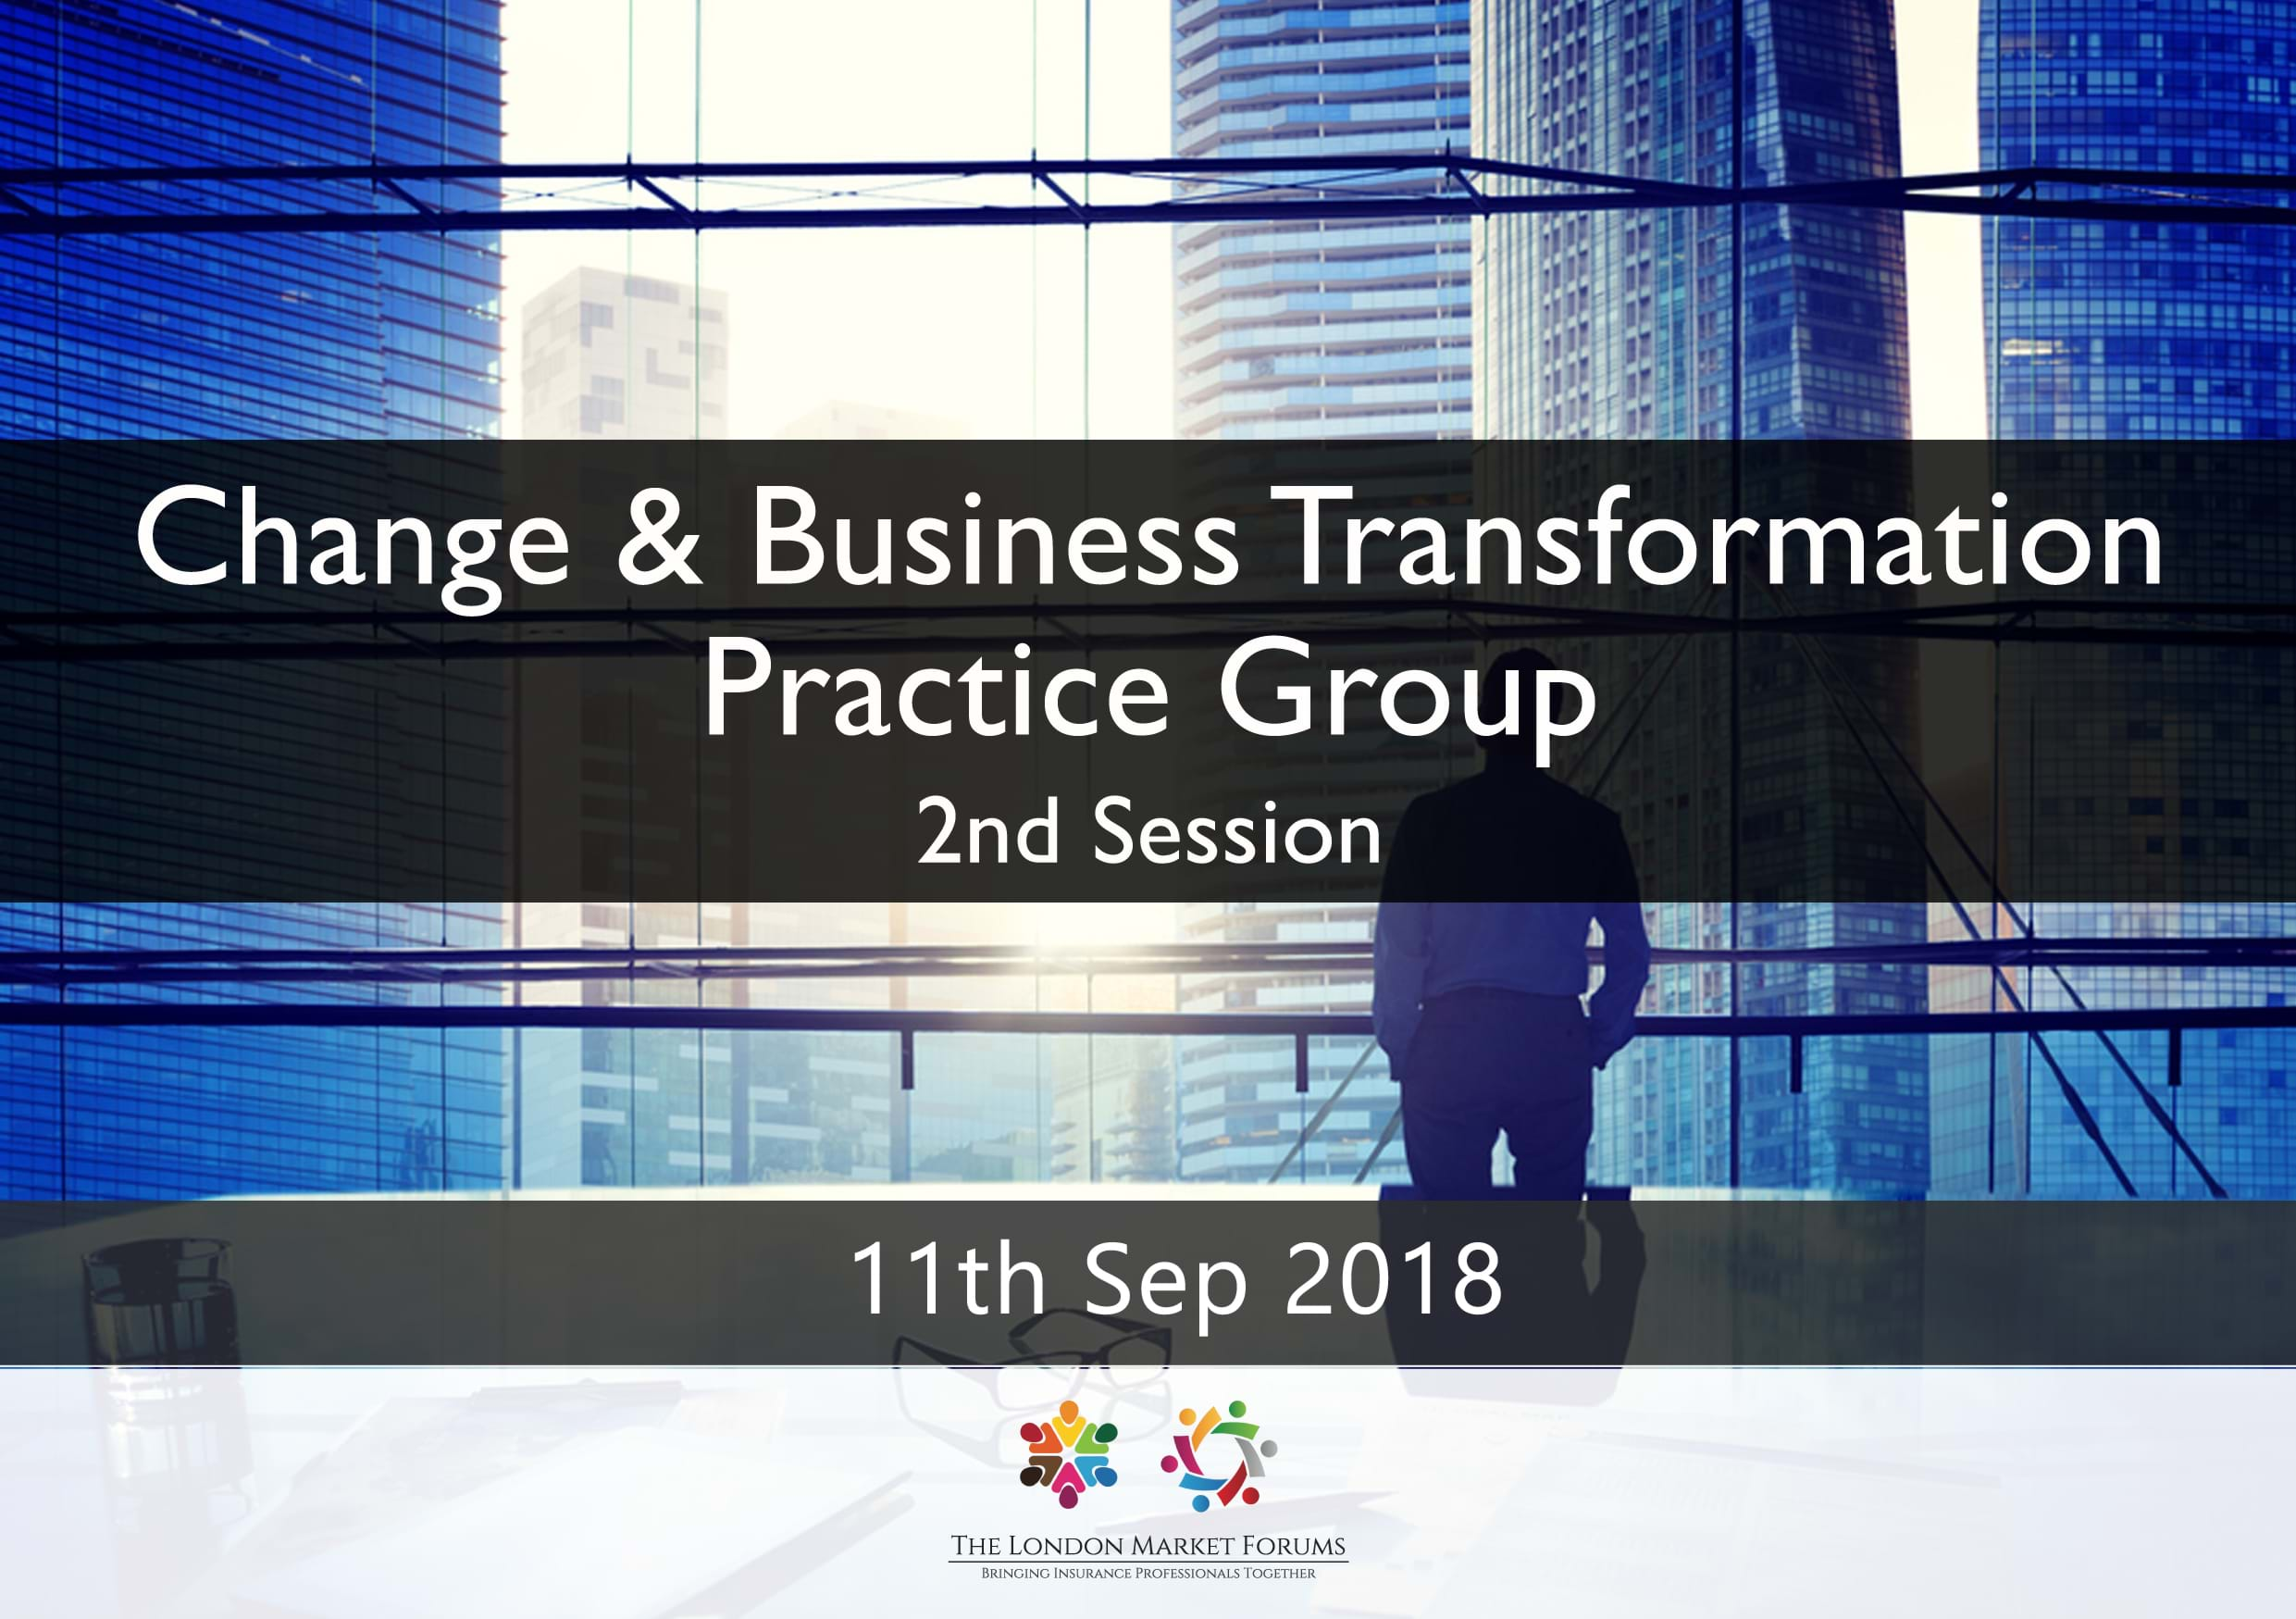 Change & Business Transformation - 11th September 2018